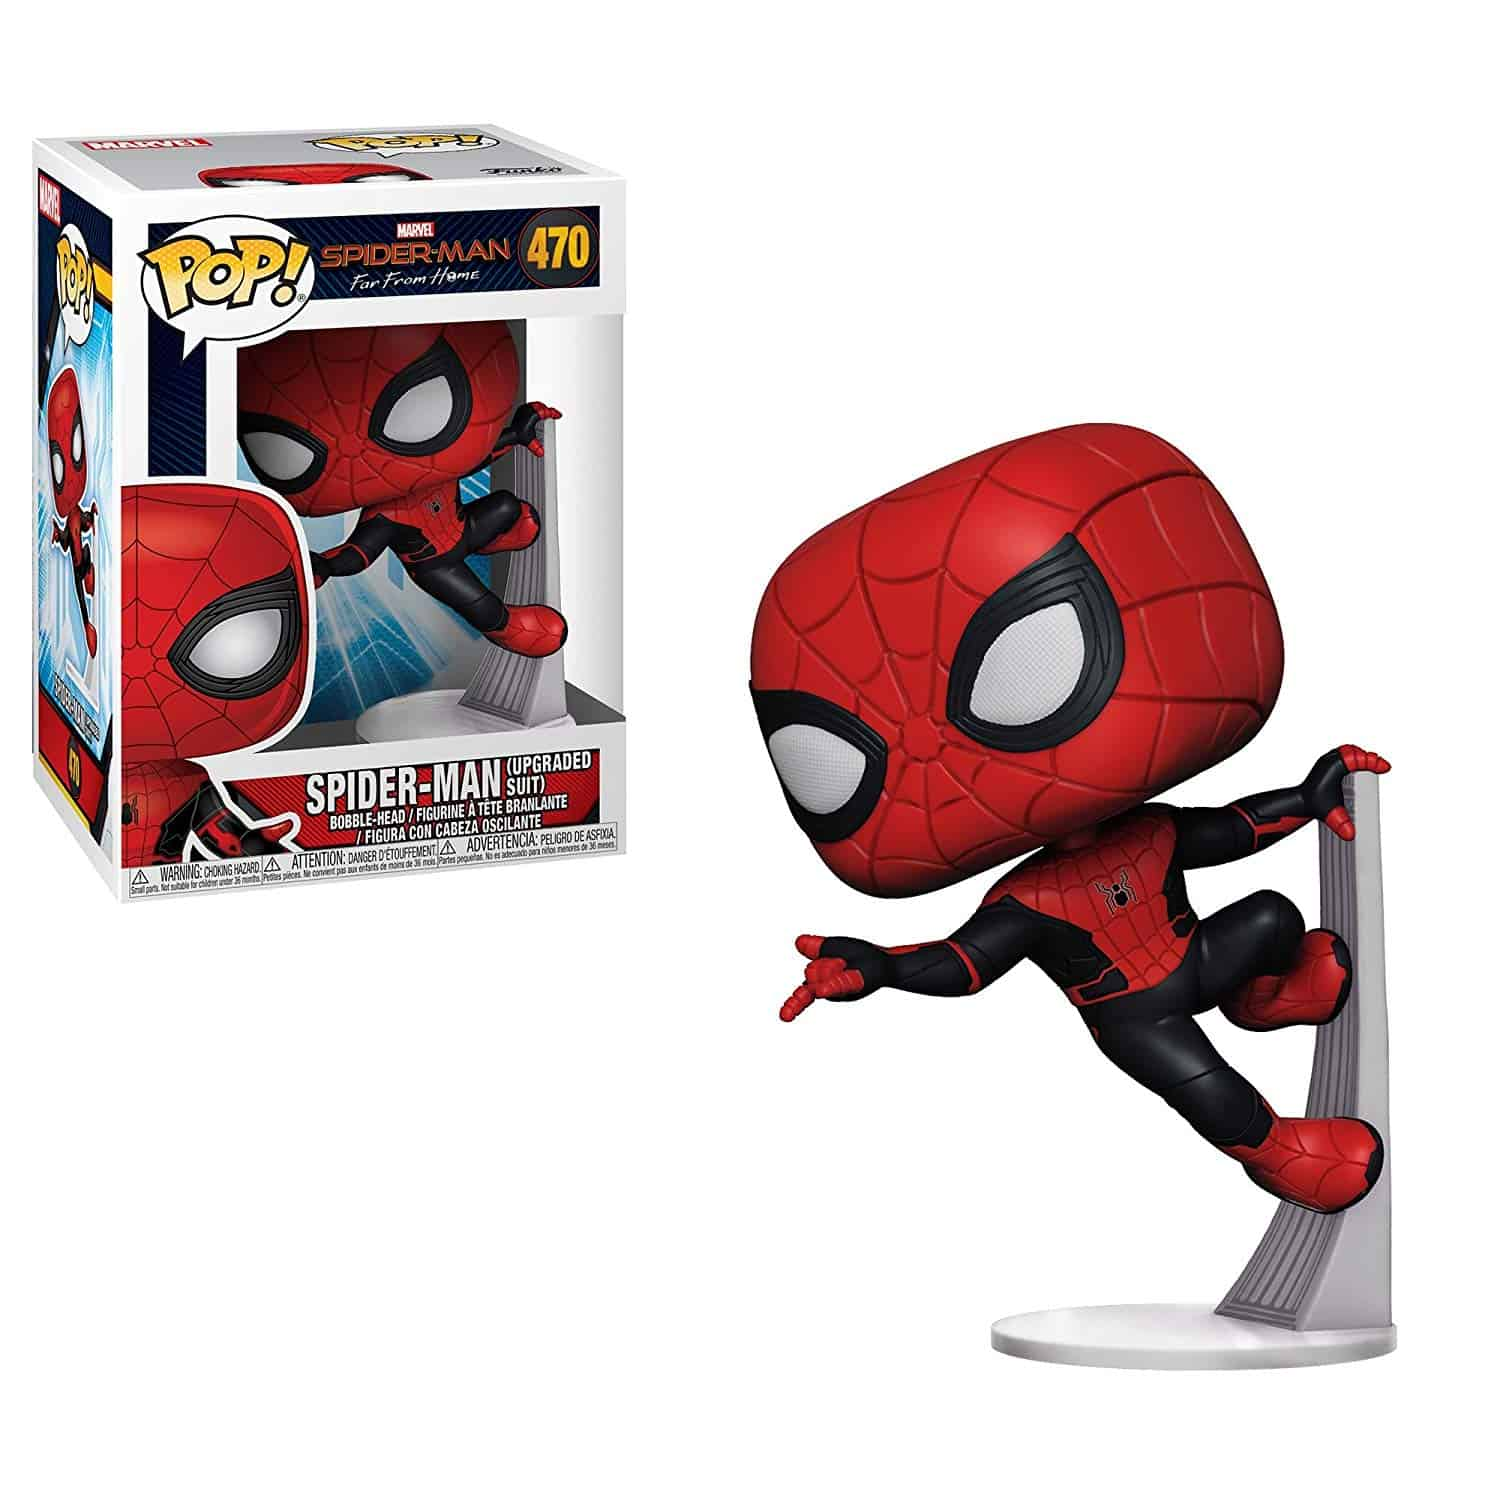 Funko Pop Spider-Man Far From Home Stealth Suit Goggles Up #476 Target Exclusive